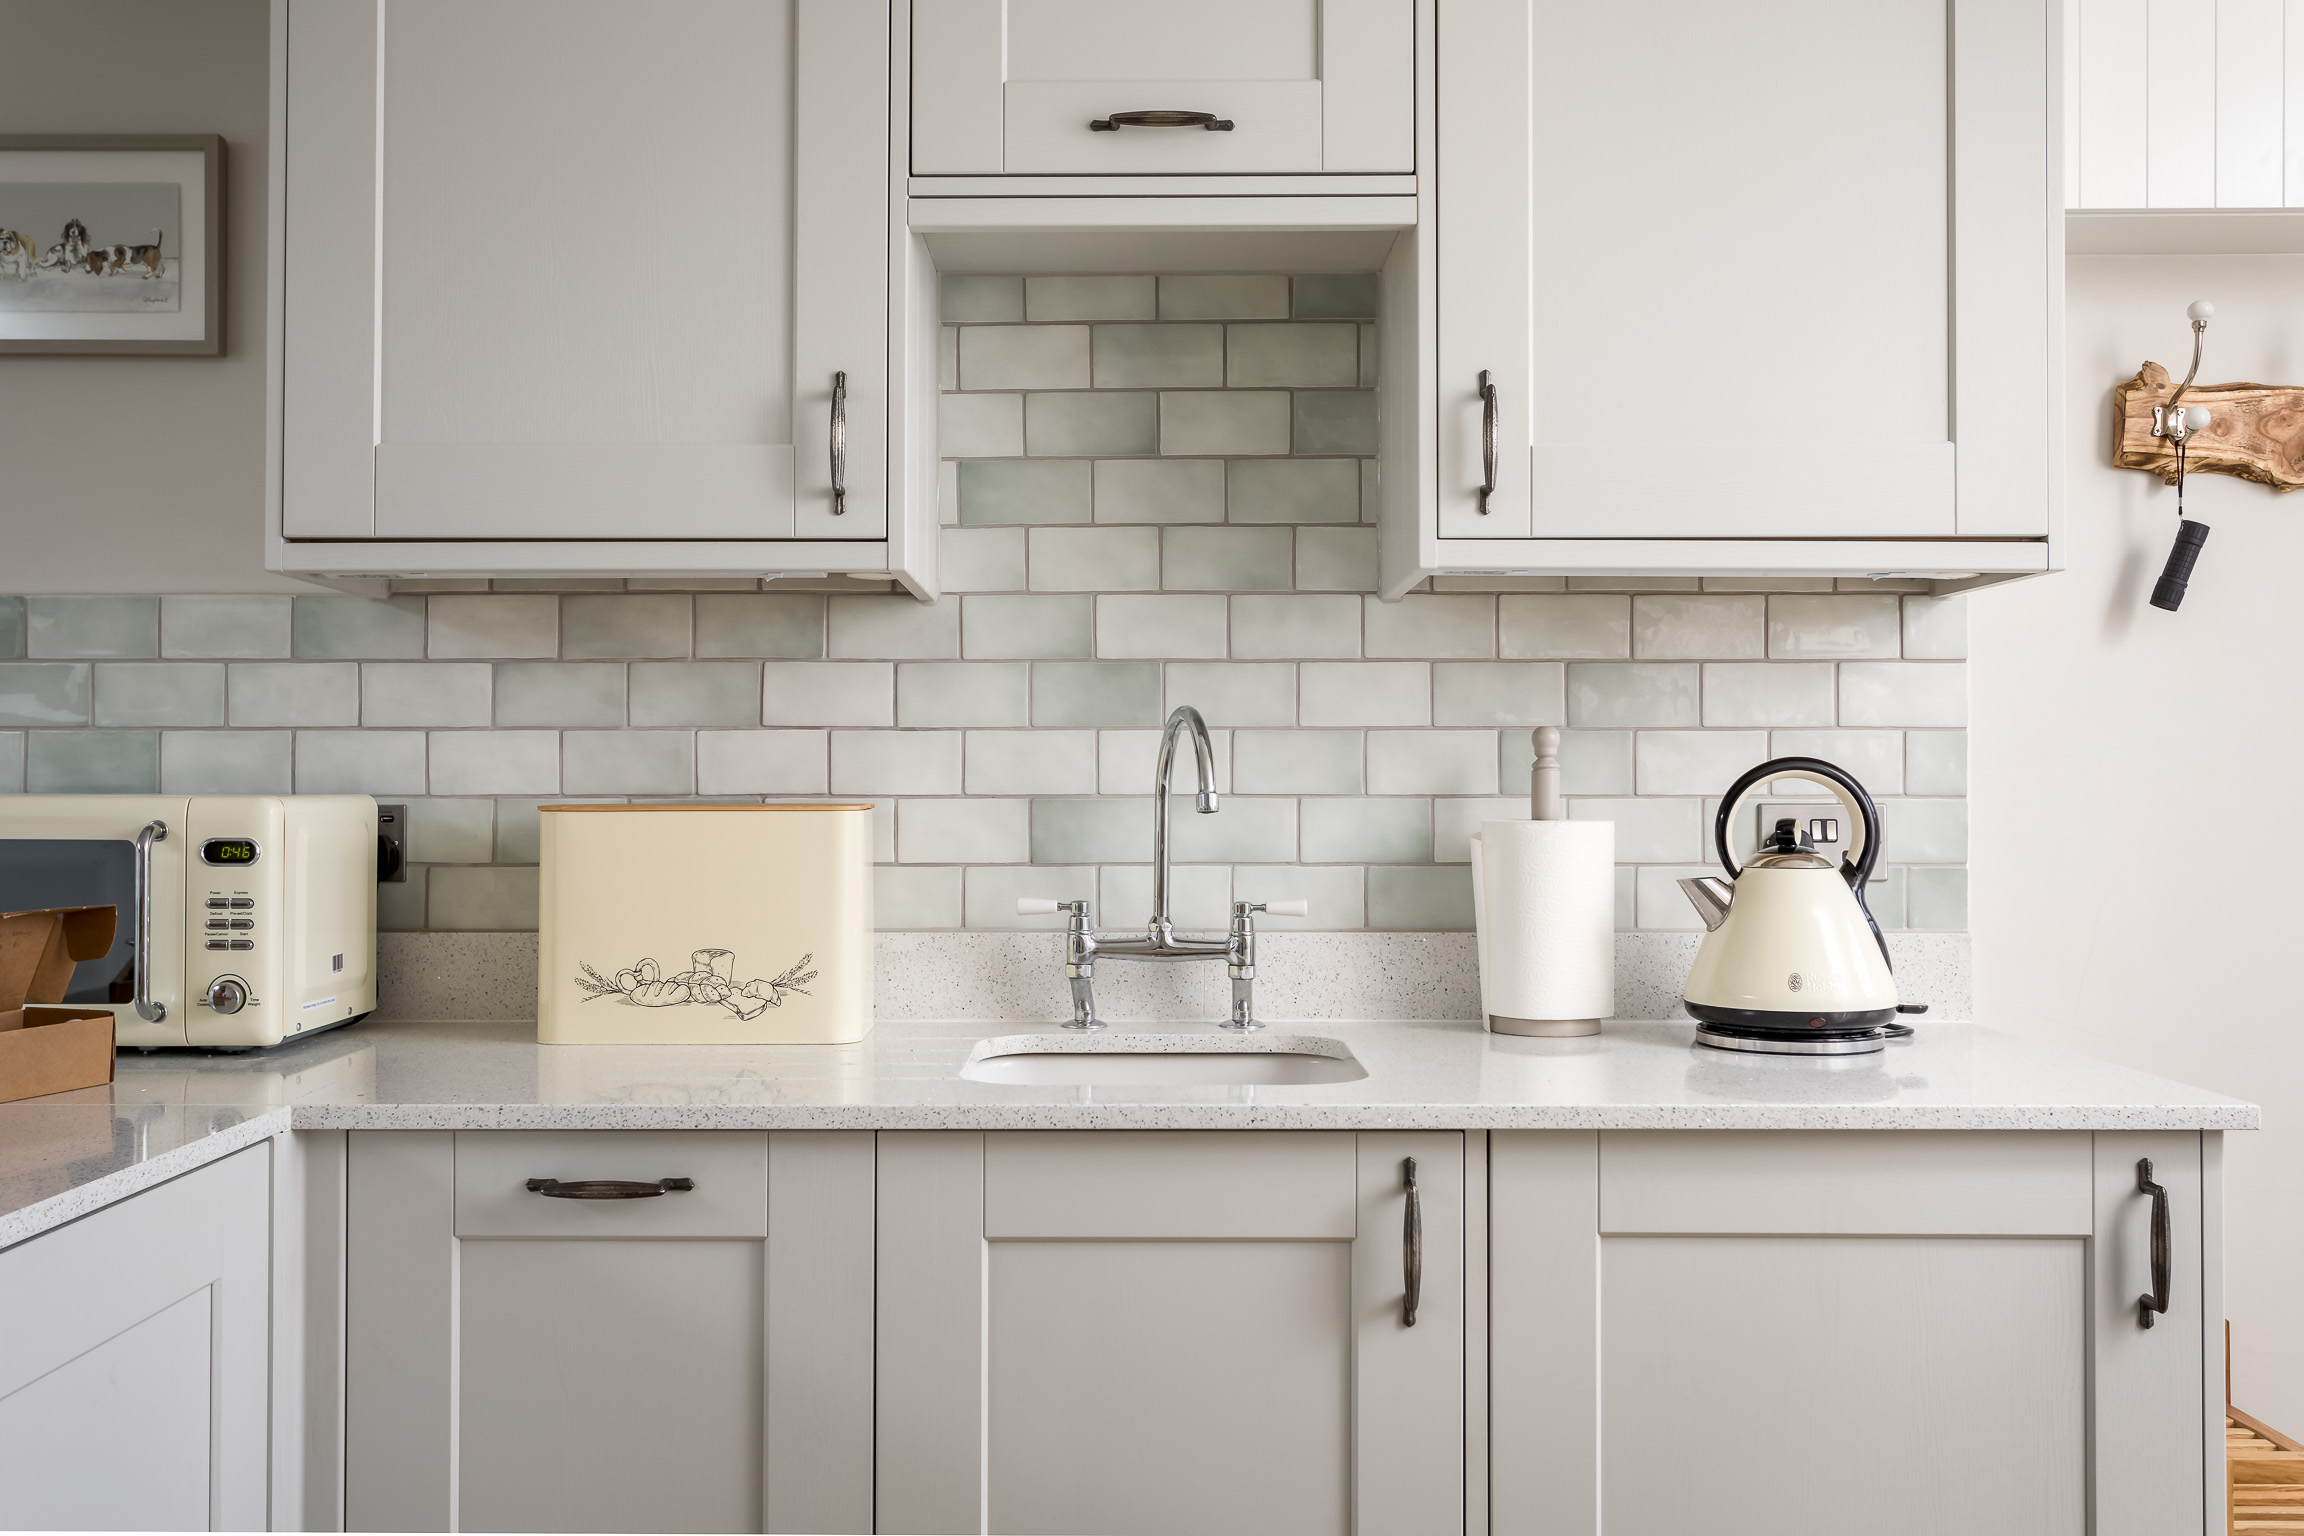 Kitchen: Toast, Boil and drink